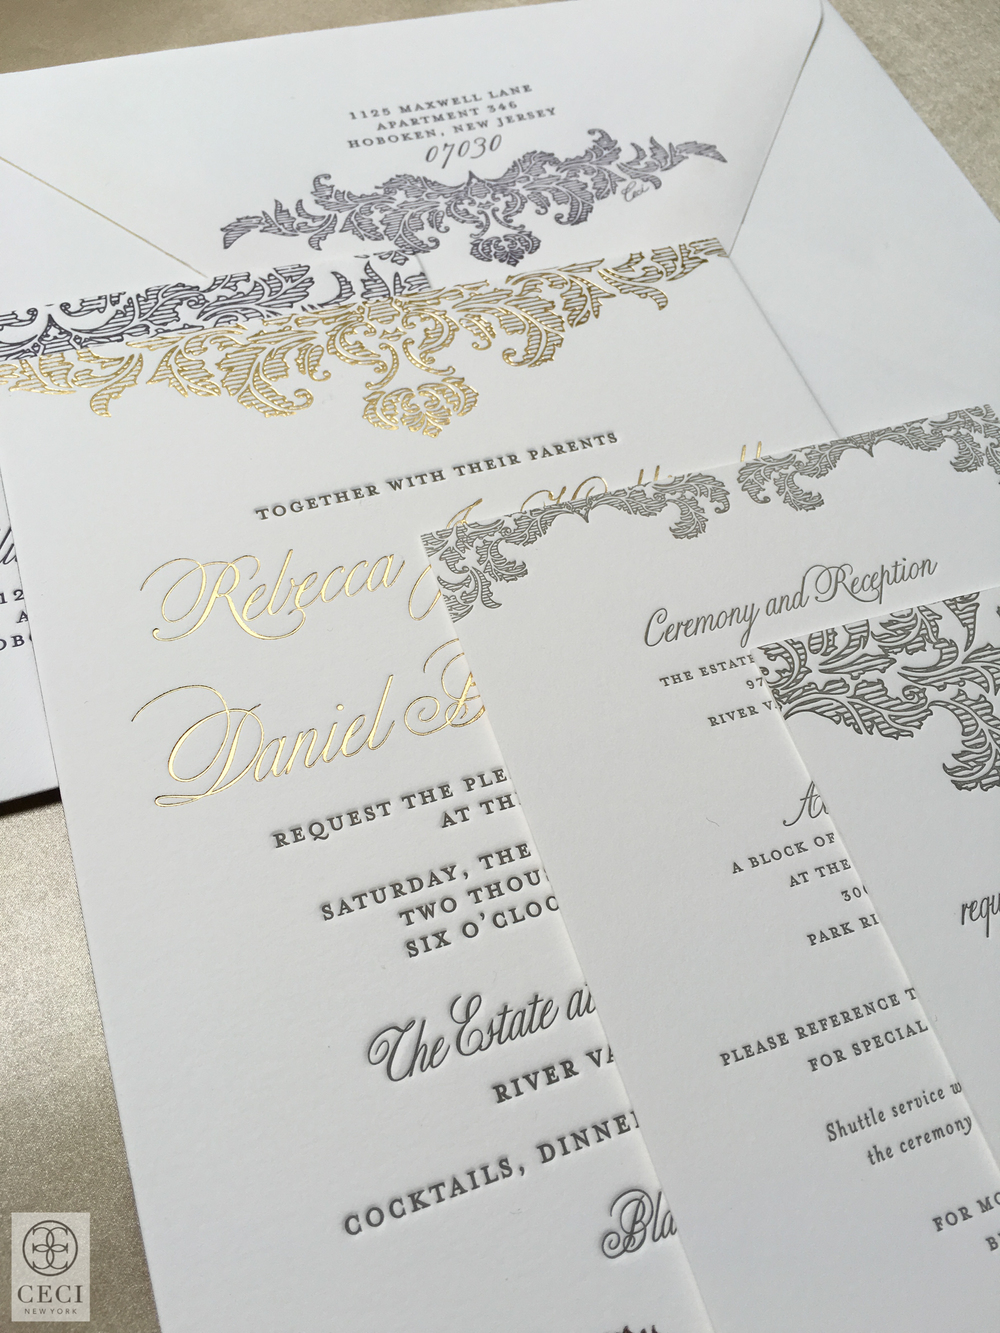 Ceci_New_York_New_Jersey_Invitations_Wedding_New_York_Elegance_Silver_Blue_Letterpress_Deco_Classic_Foil_Stamping_Custom_Couture_Personalized-27.jpg